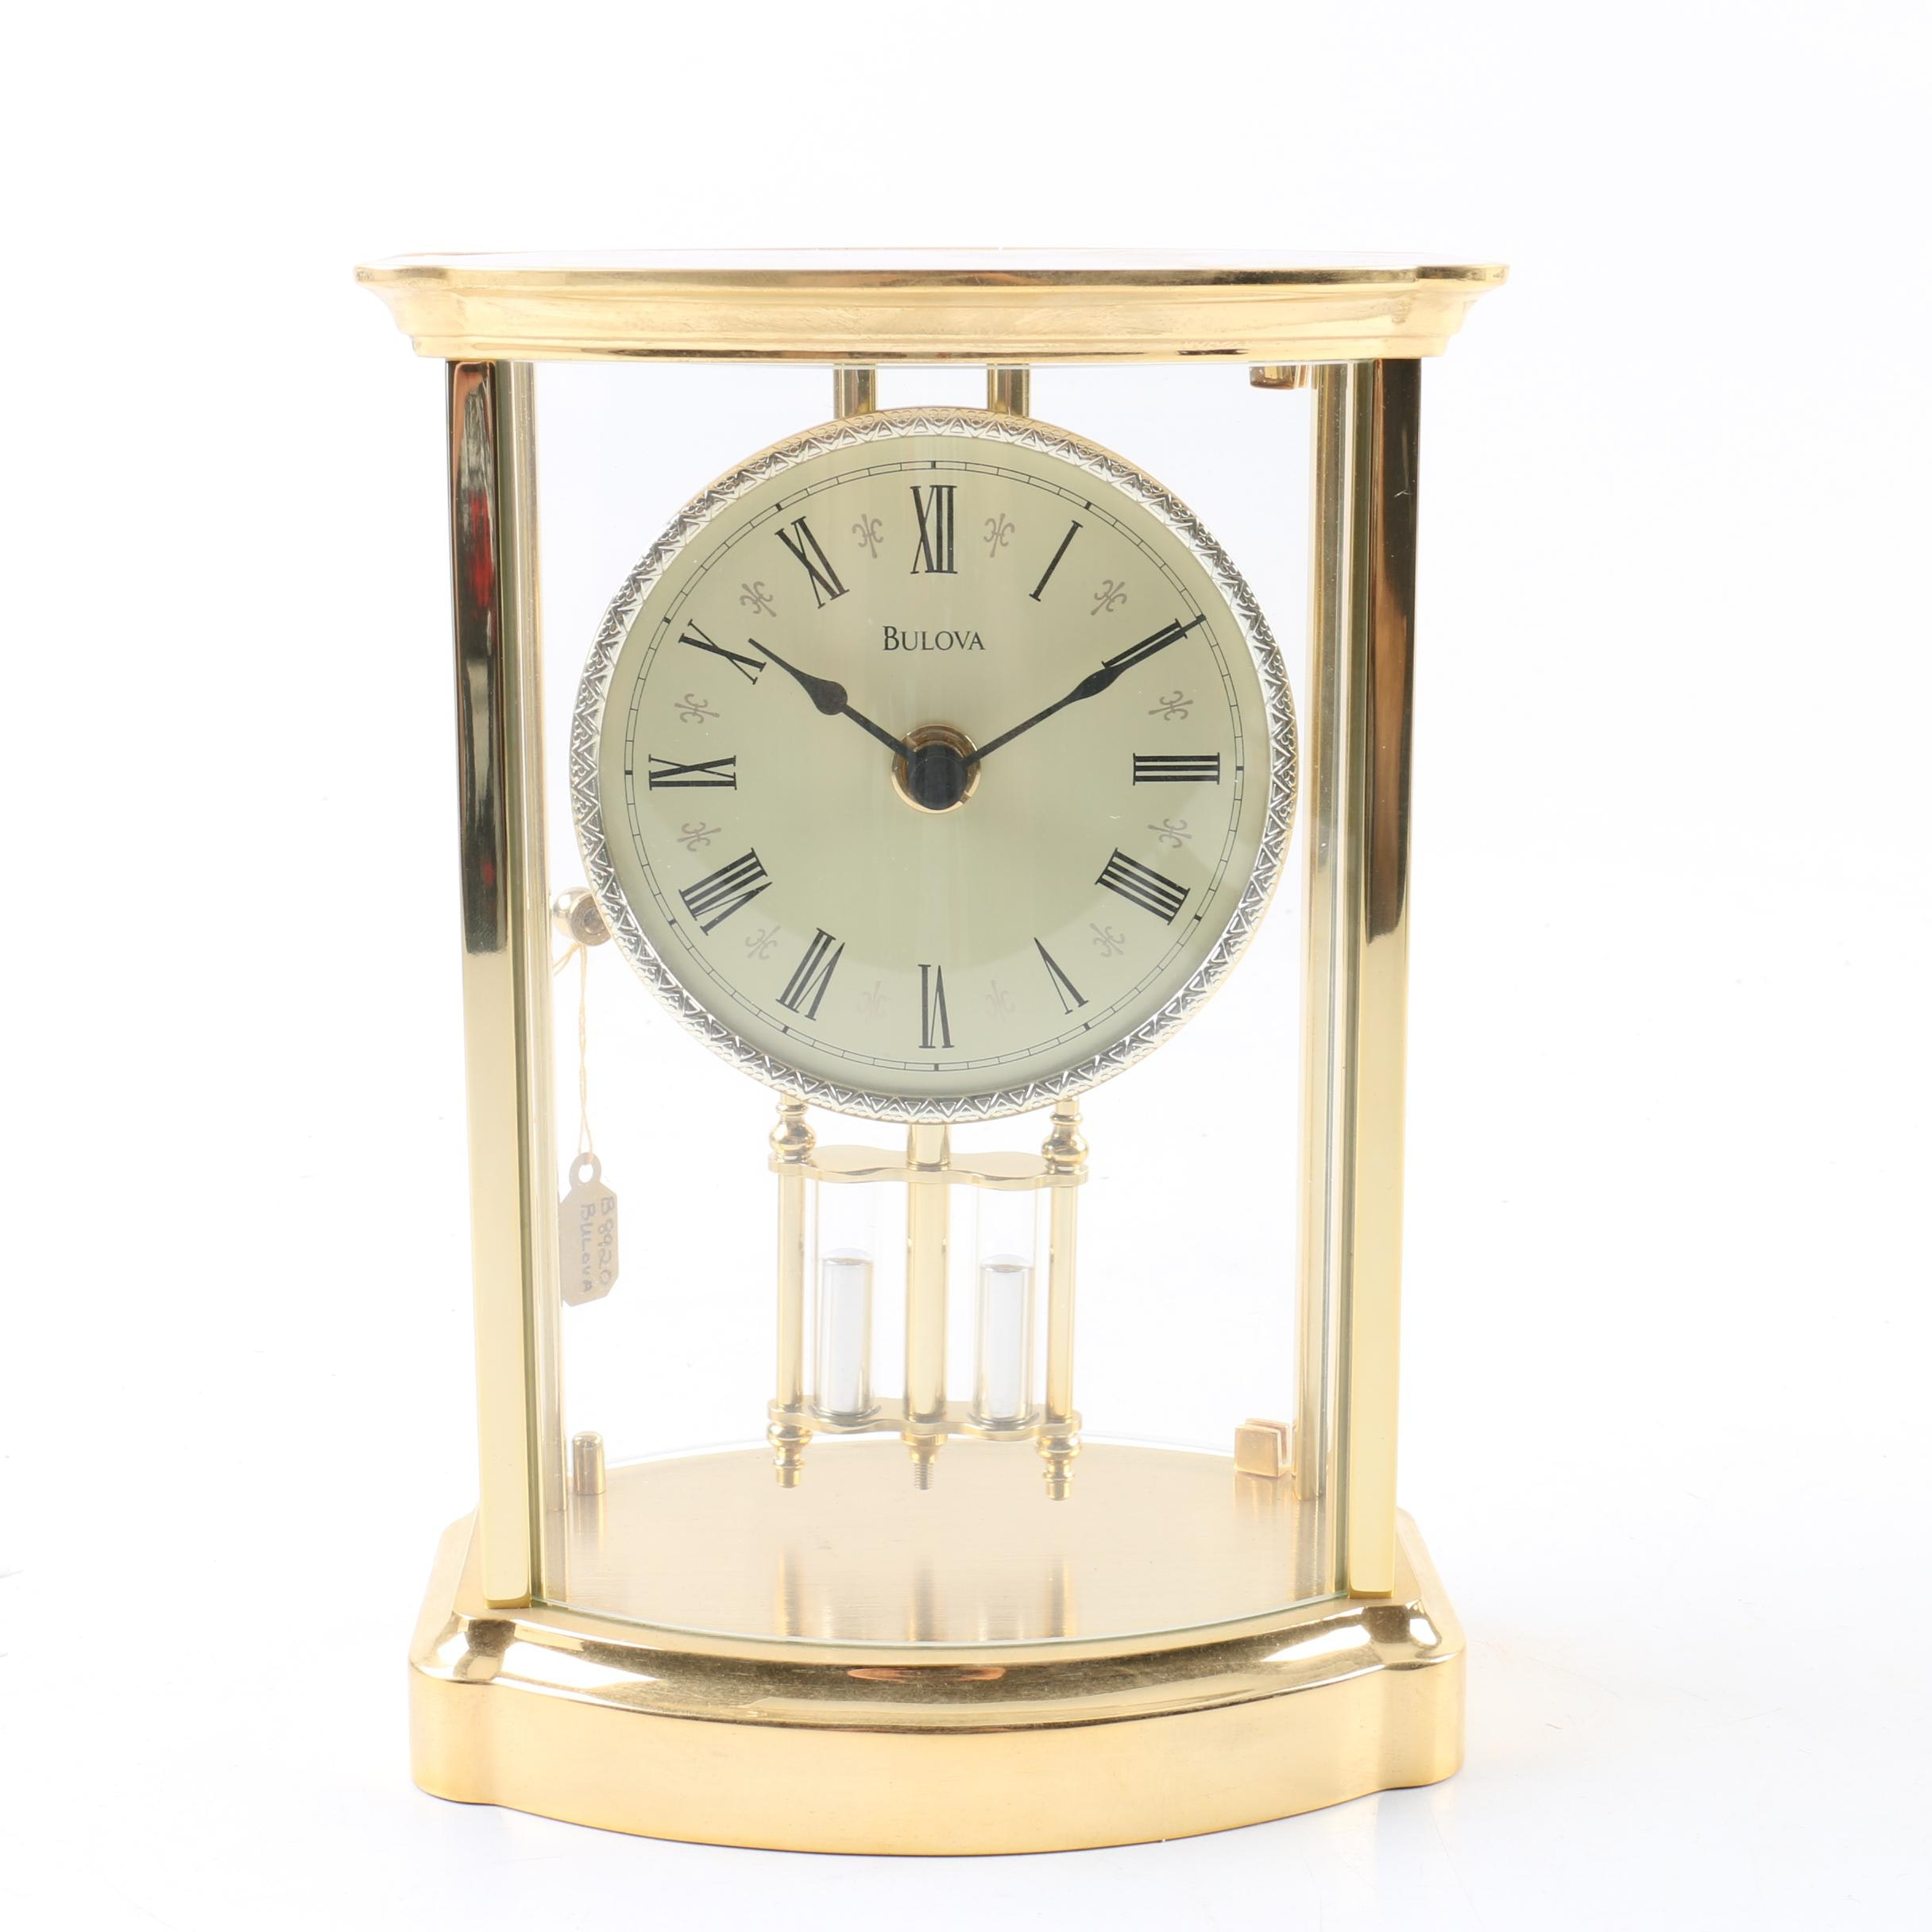 Bulova Contemporary Style Desk Clock with Mercury Pendulum